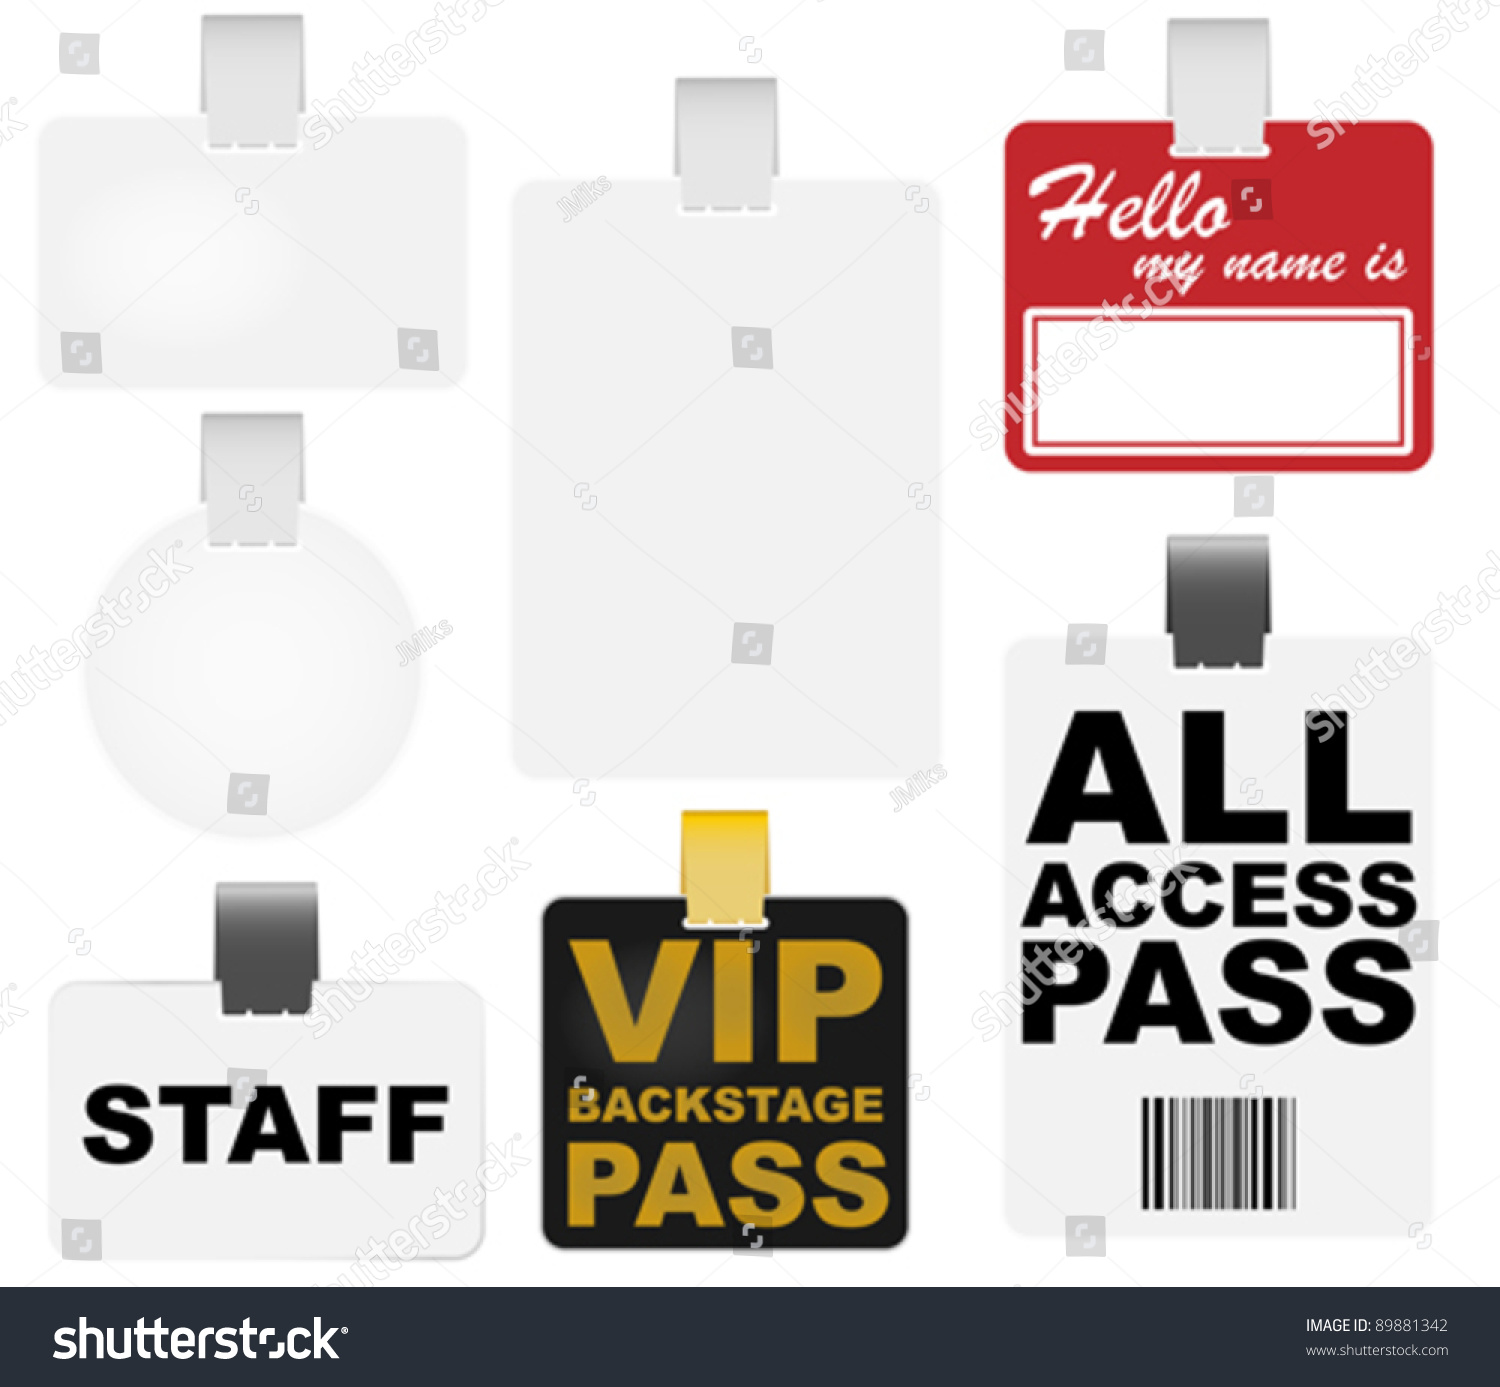 vip all access pass template pictures to pin on pinterest pinsdaddy. Black Bedroom Furniture Sets. Home Design Ideas